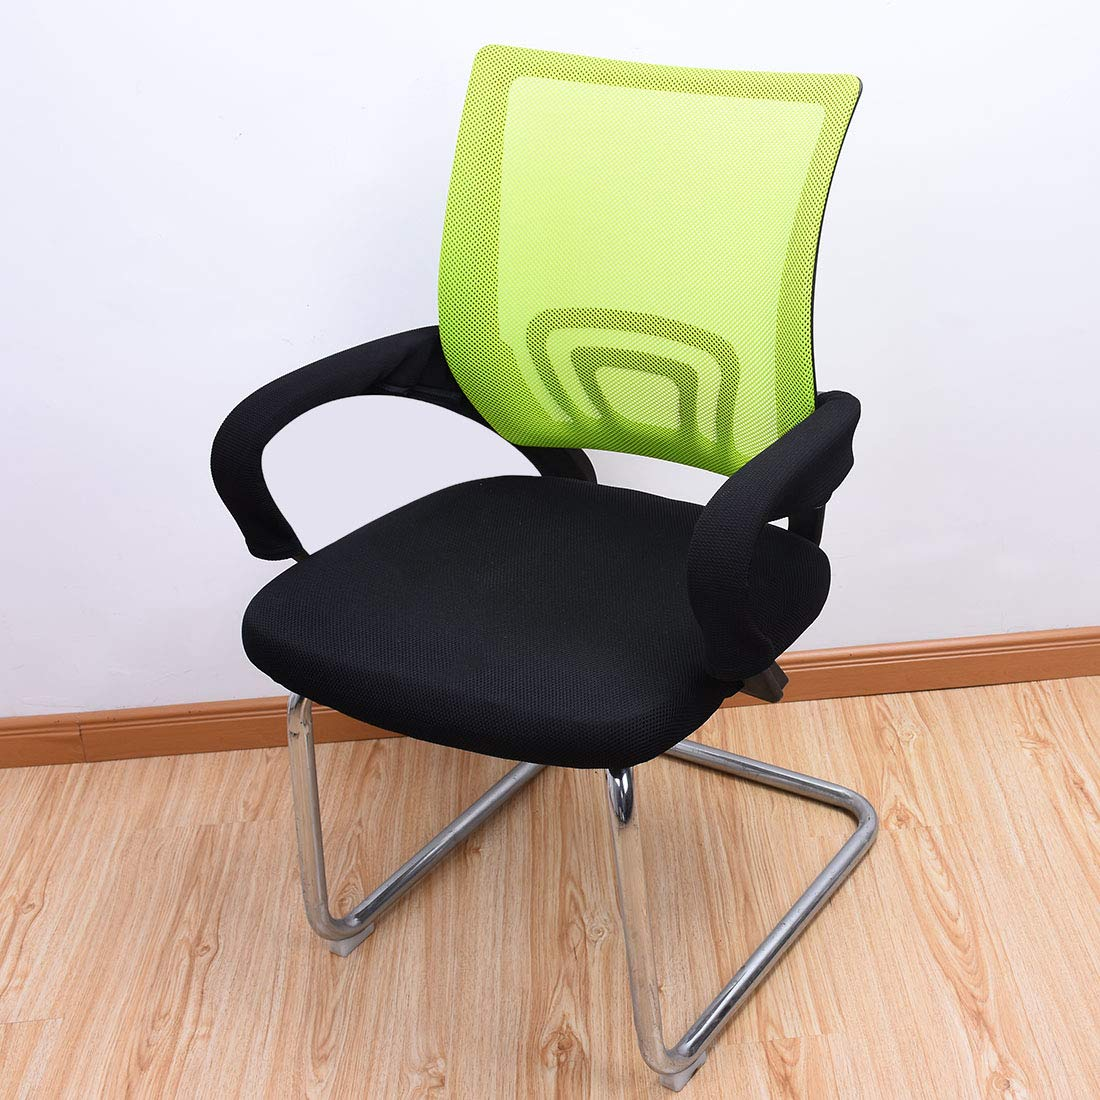 MJL 1 Pair Chair Armrest Covers Office Chair Arm Slipcovers Furniture Arm Cushion Protectors Coffee